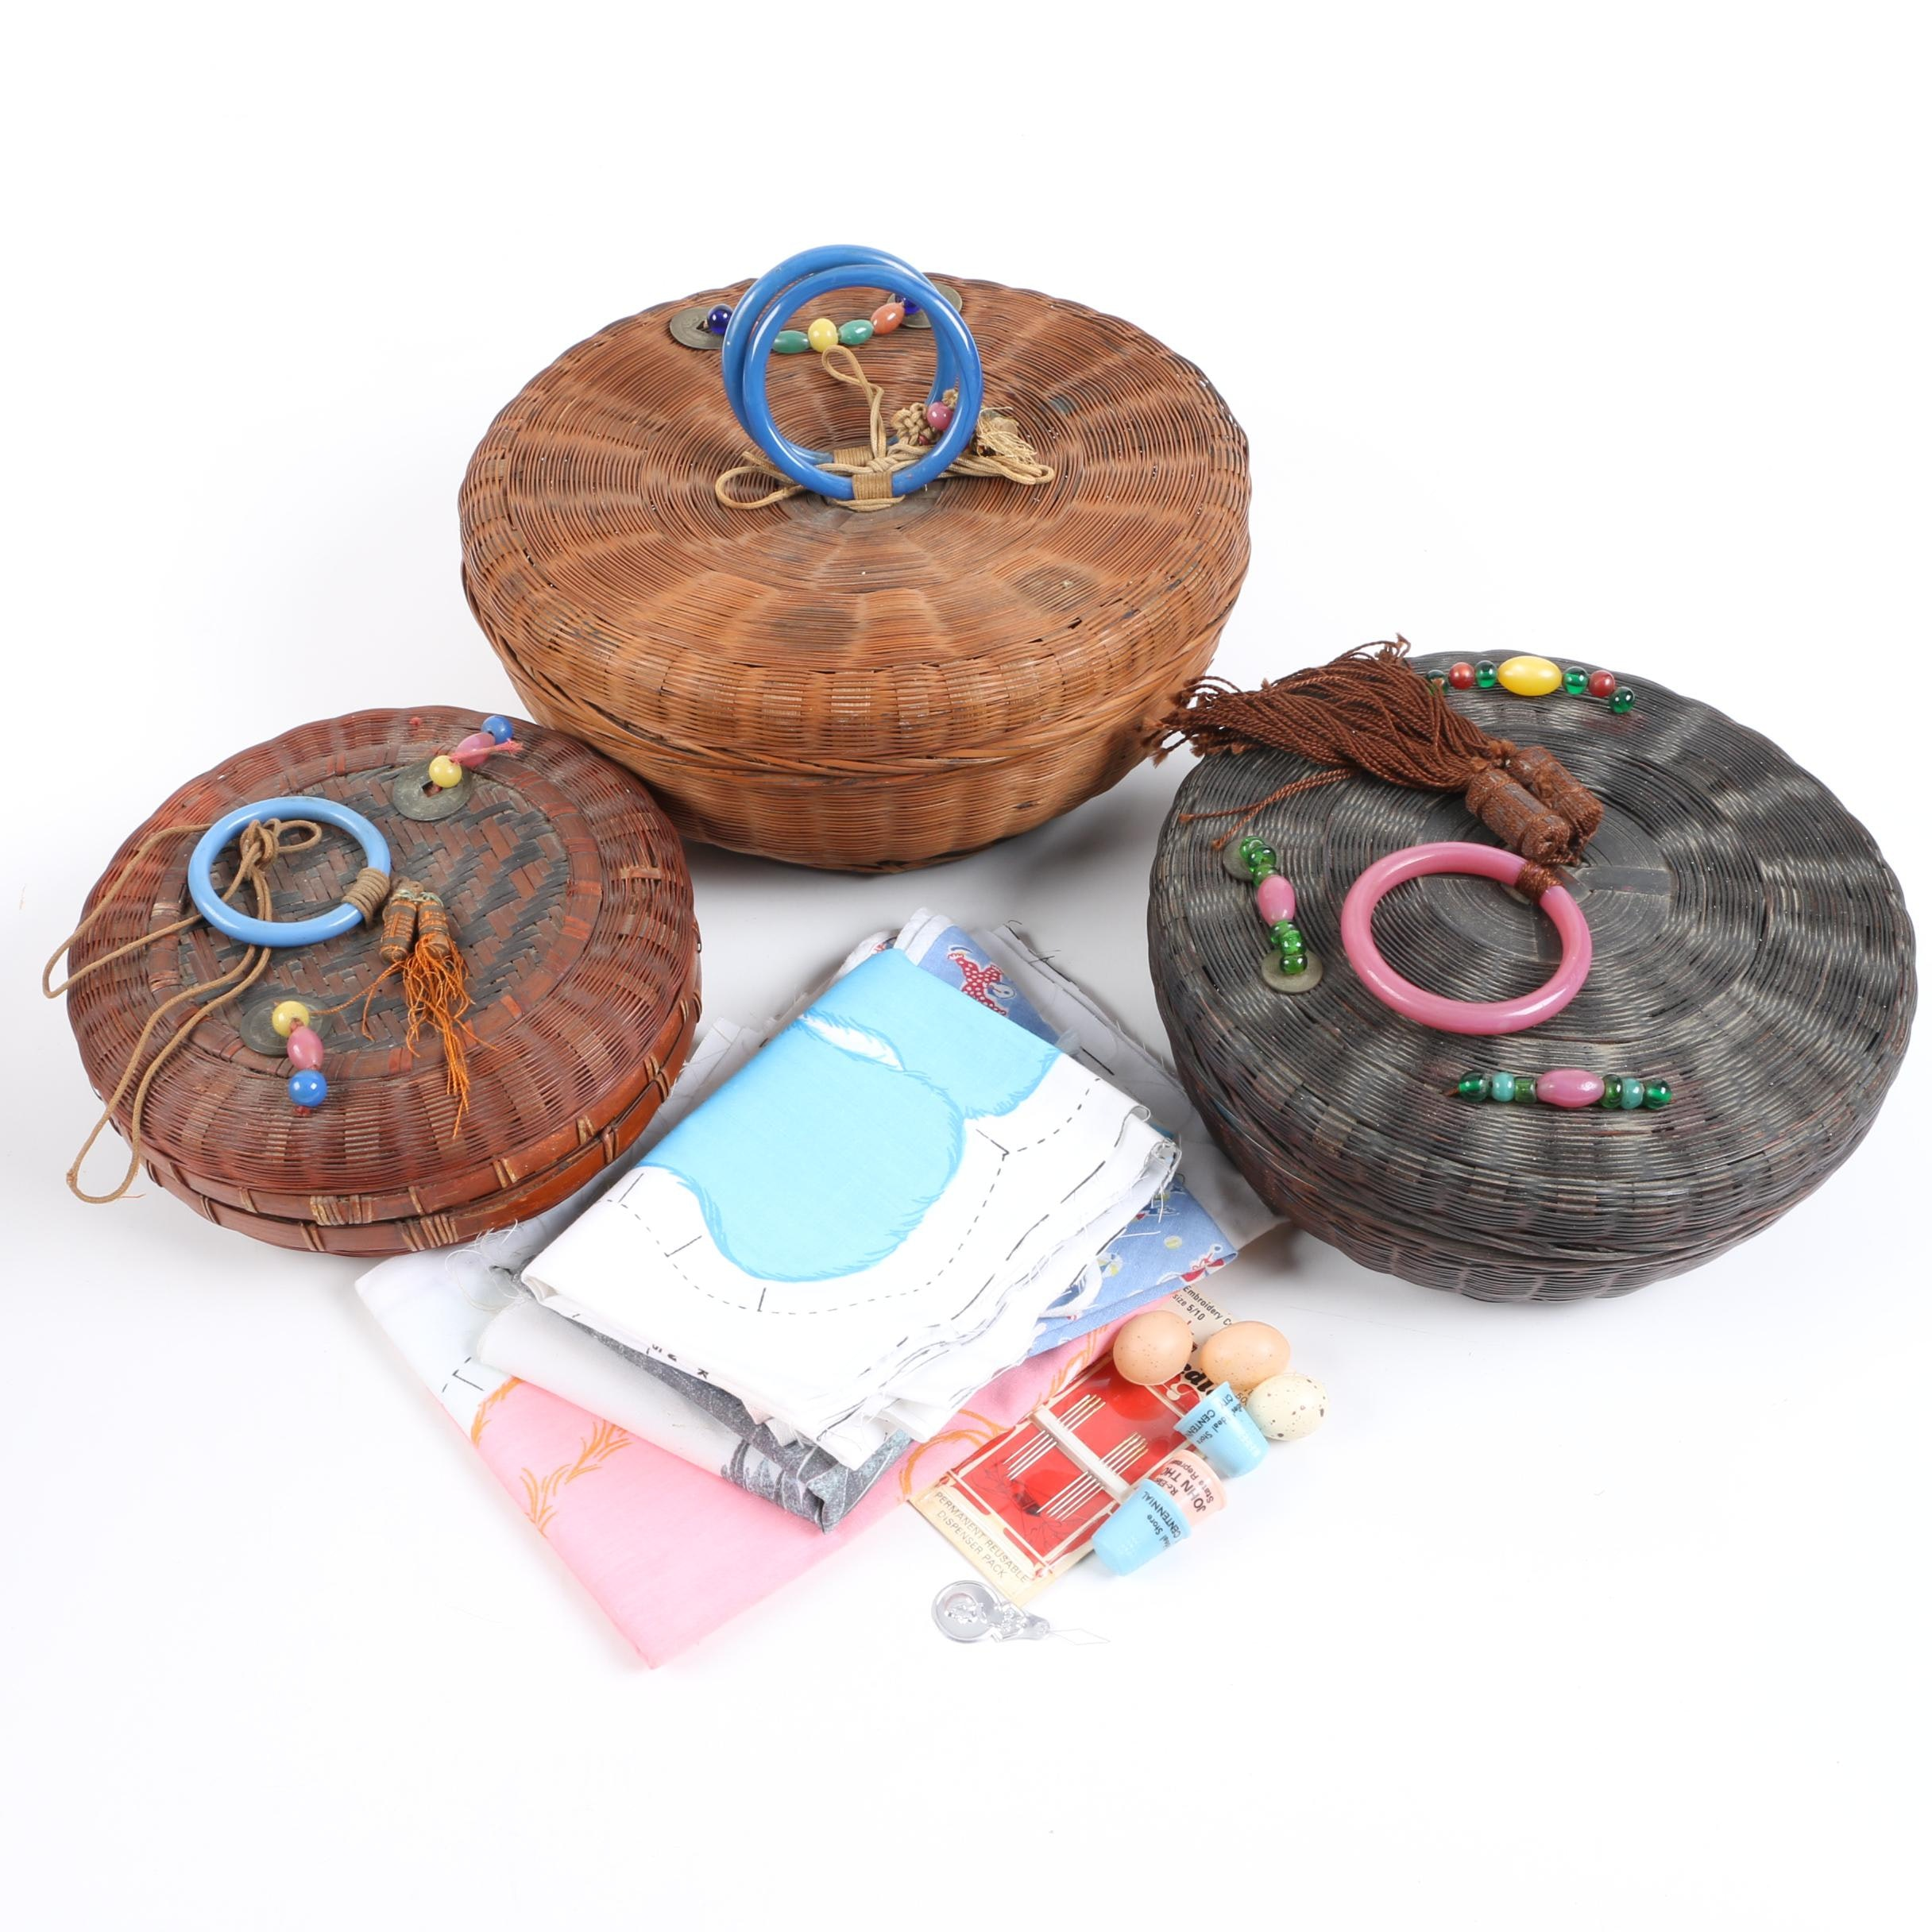 Decorative Lidded and Woven Baskets